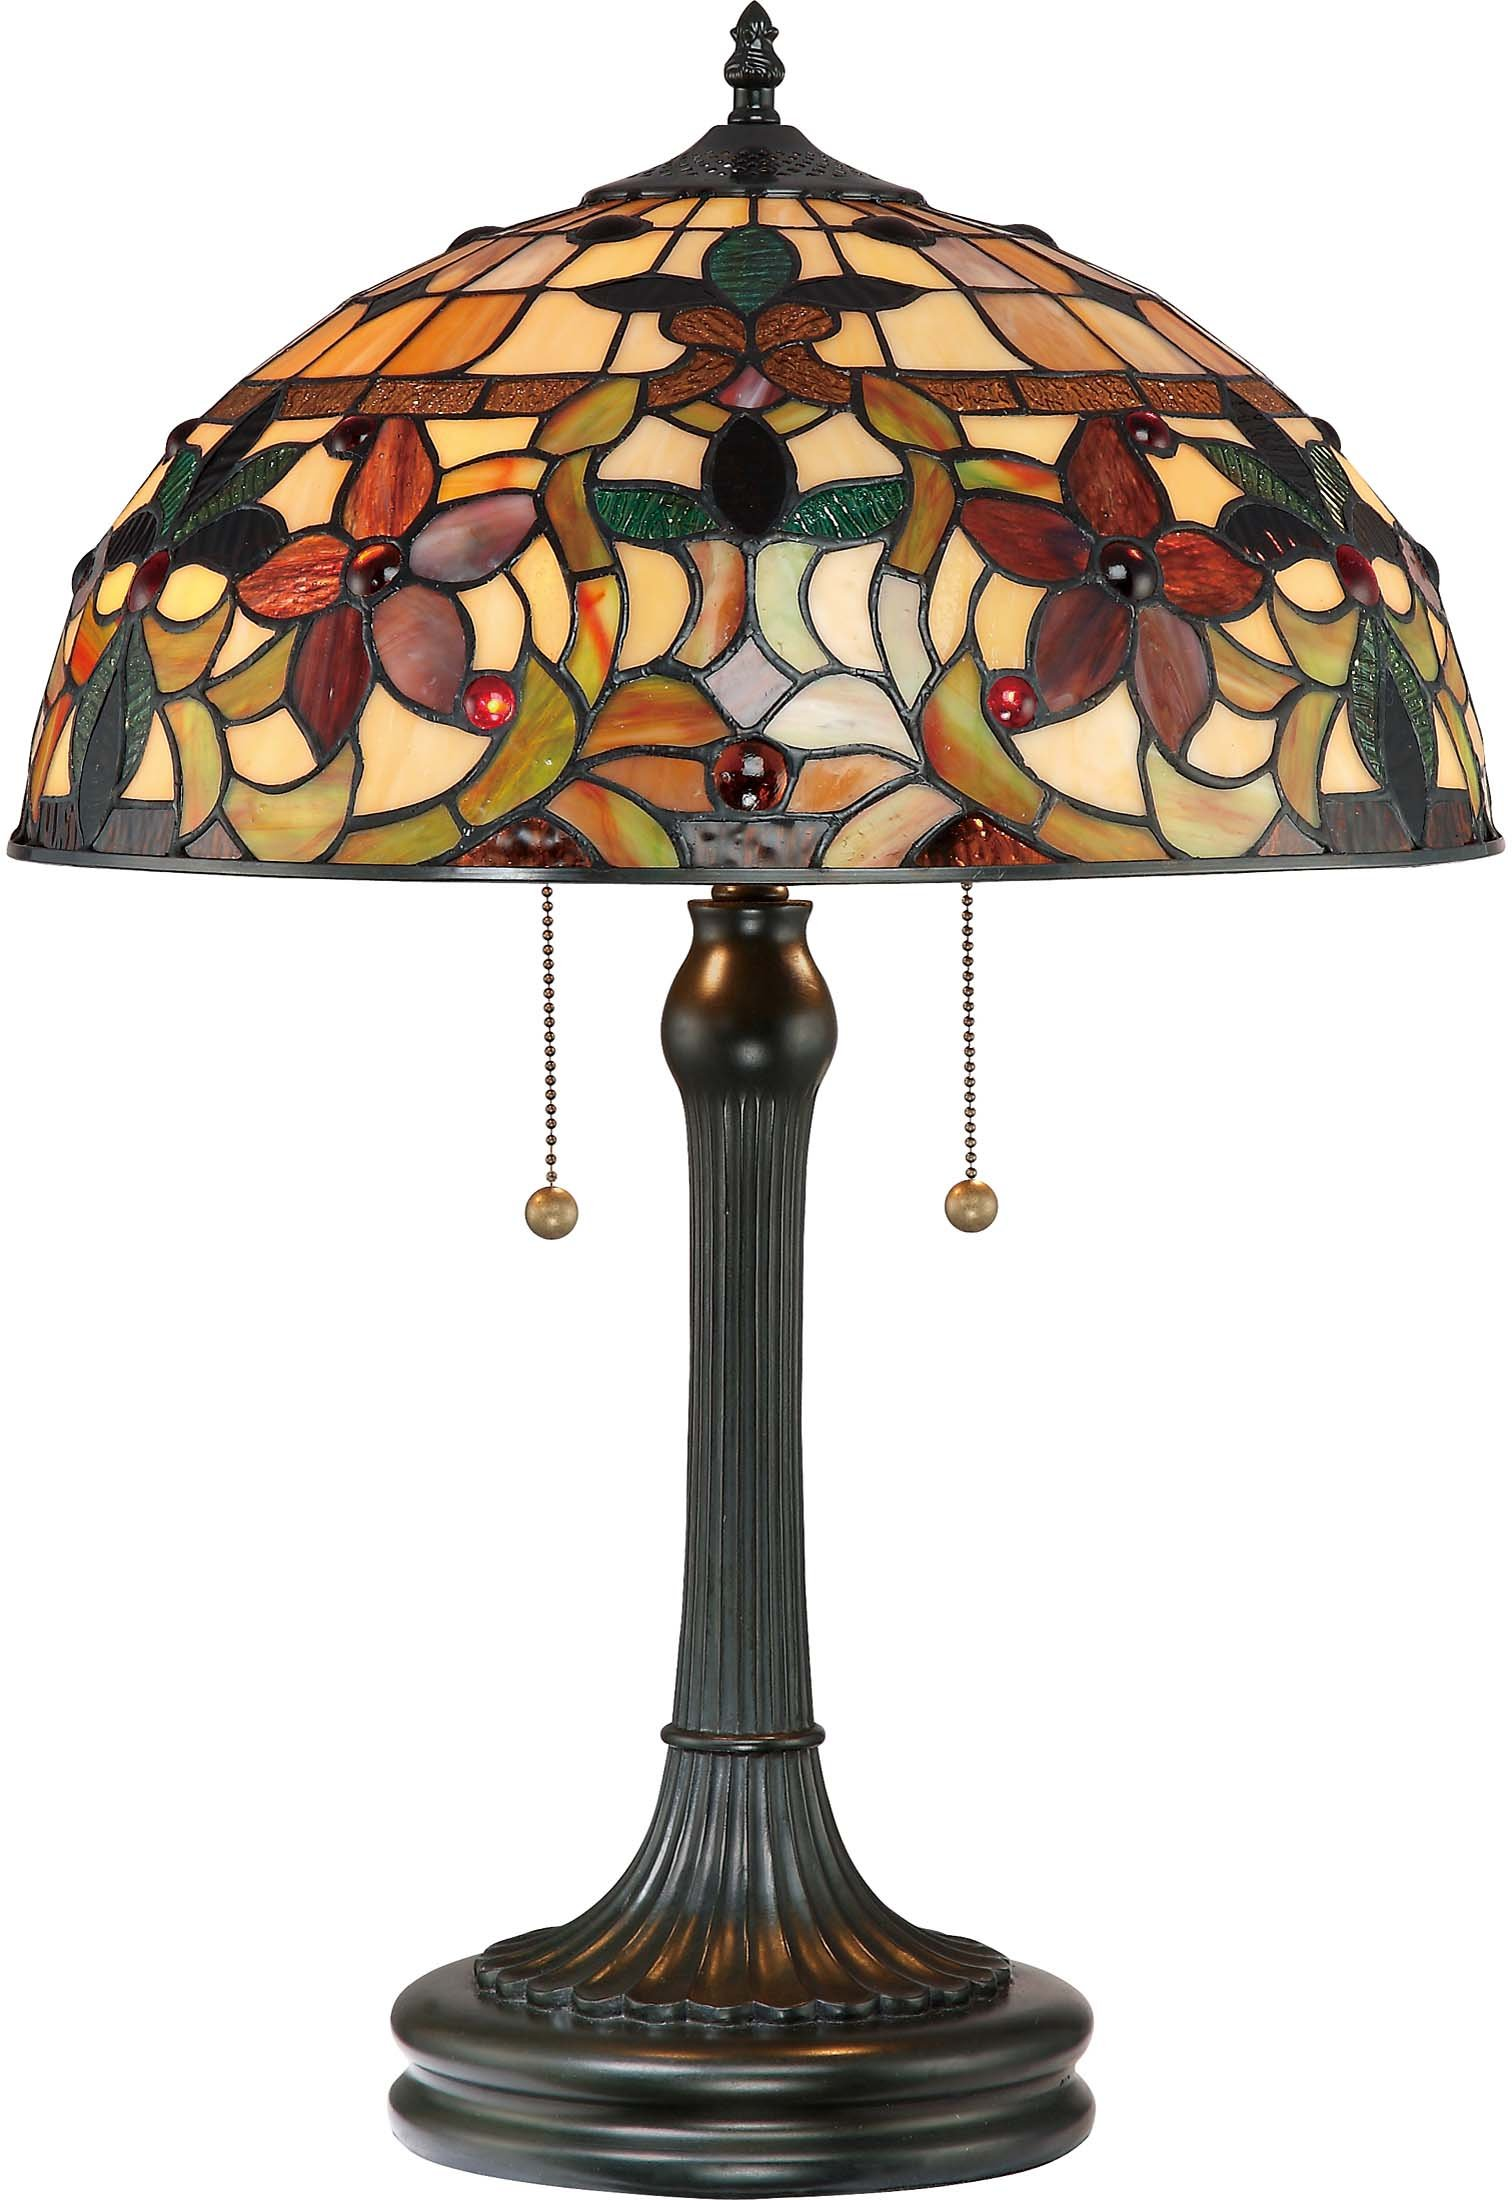 Quoizel TF878T 2-Light Kami Table Lamp in Vintage Bronze